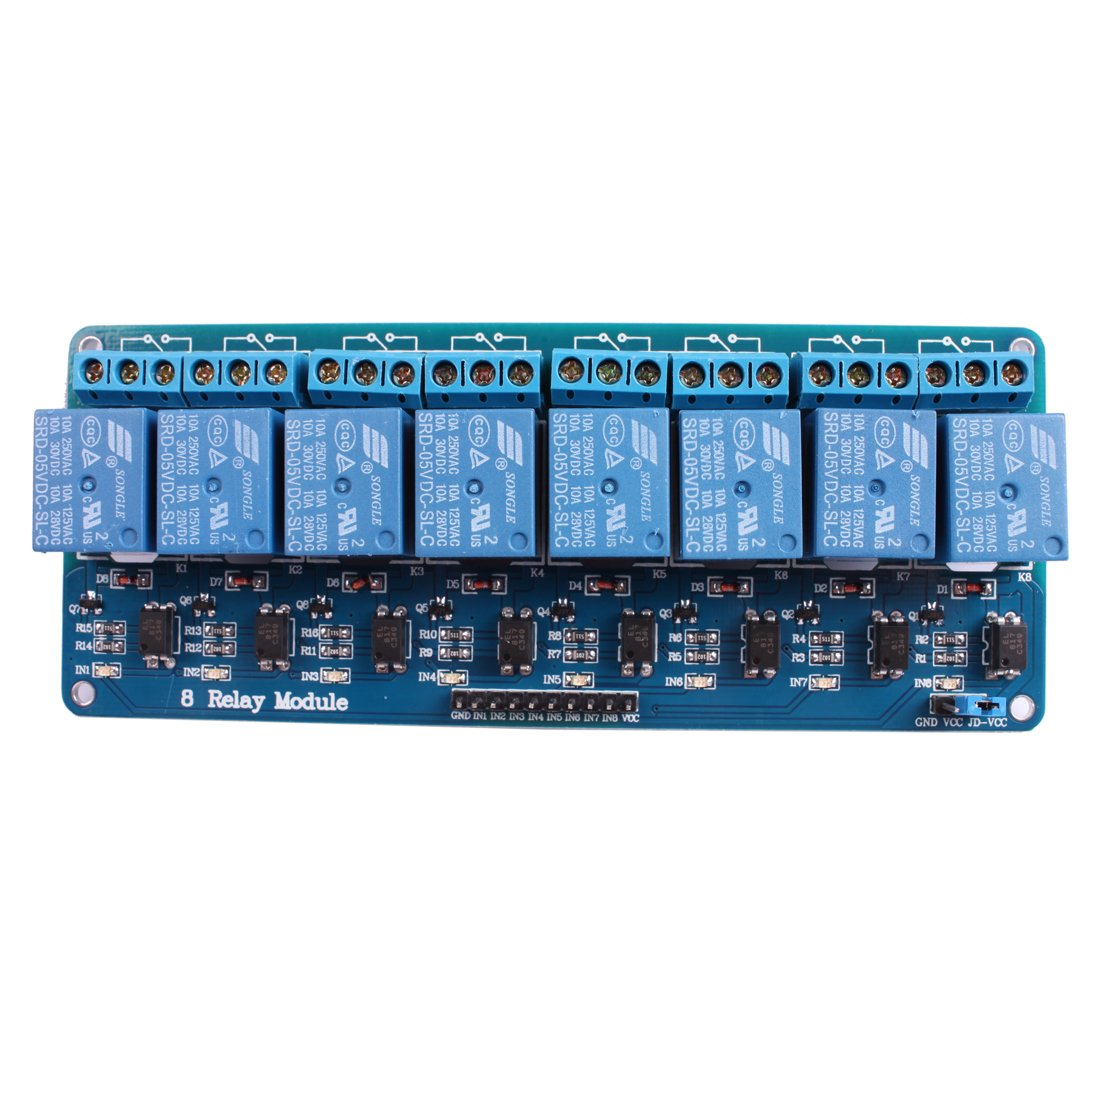 Amazon.com: JBtek 8 Channel DC 5V Relay Module for Arduino Raspberry Pi DSP  AVR PIC ARM: Computers & Accessories